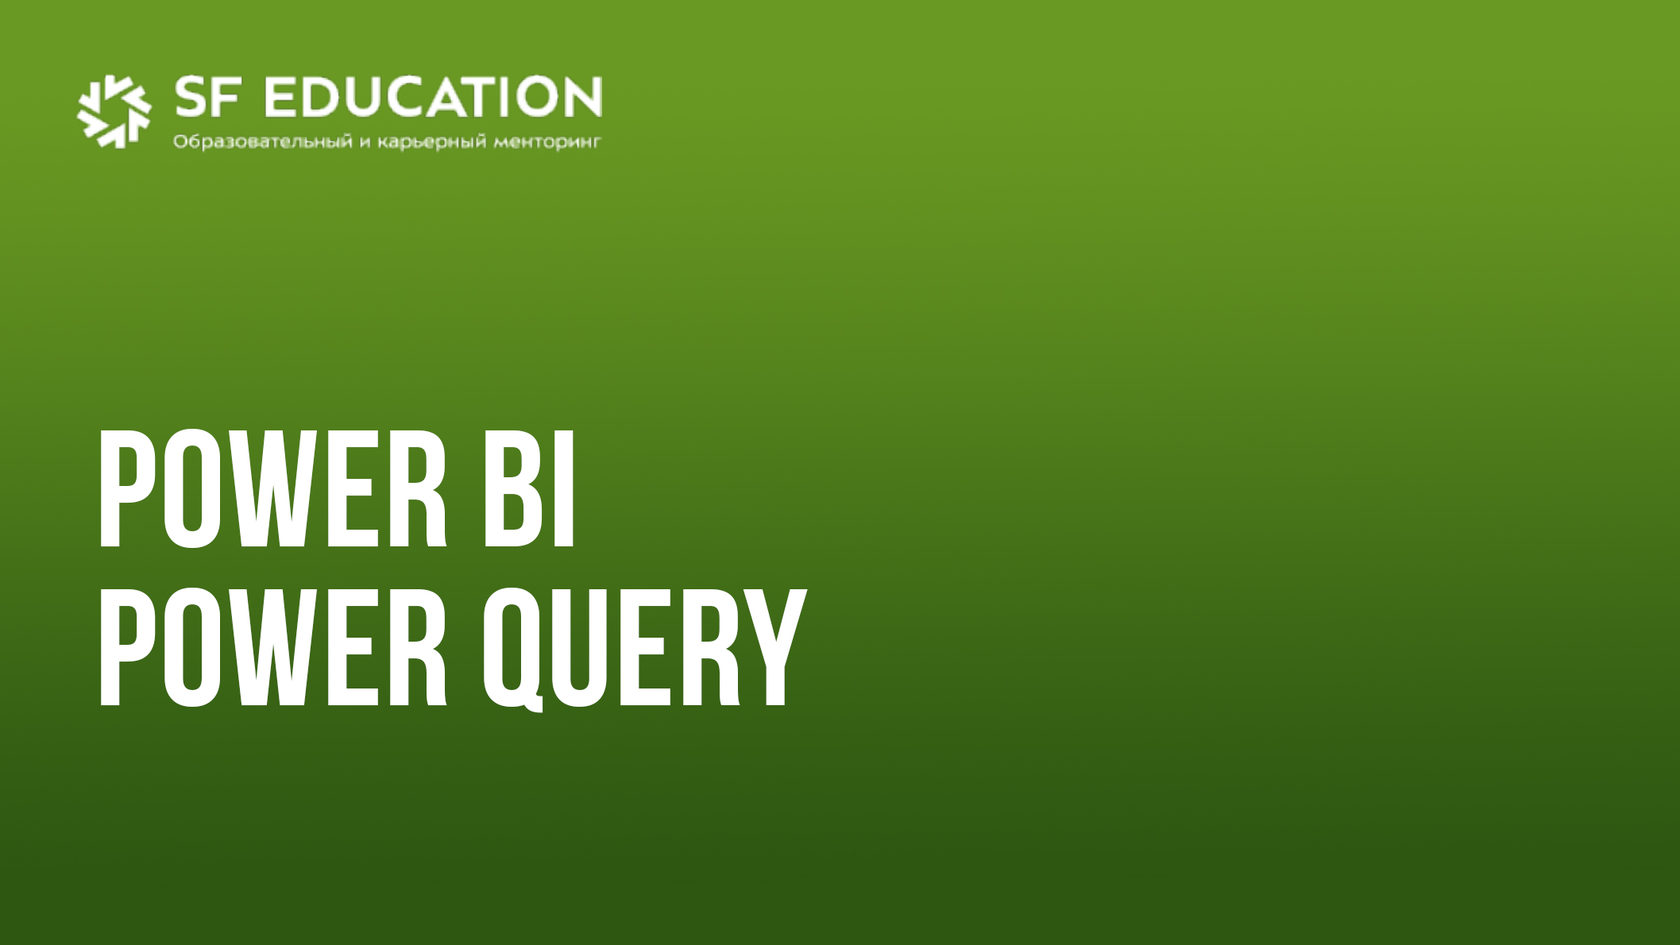 Power BI и POWER QUERY